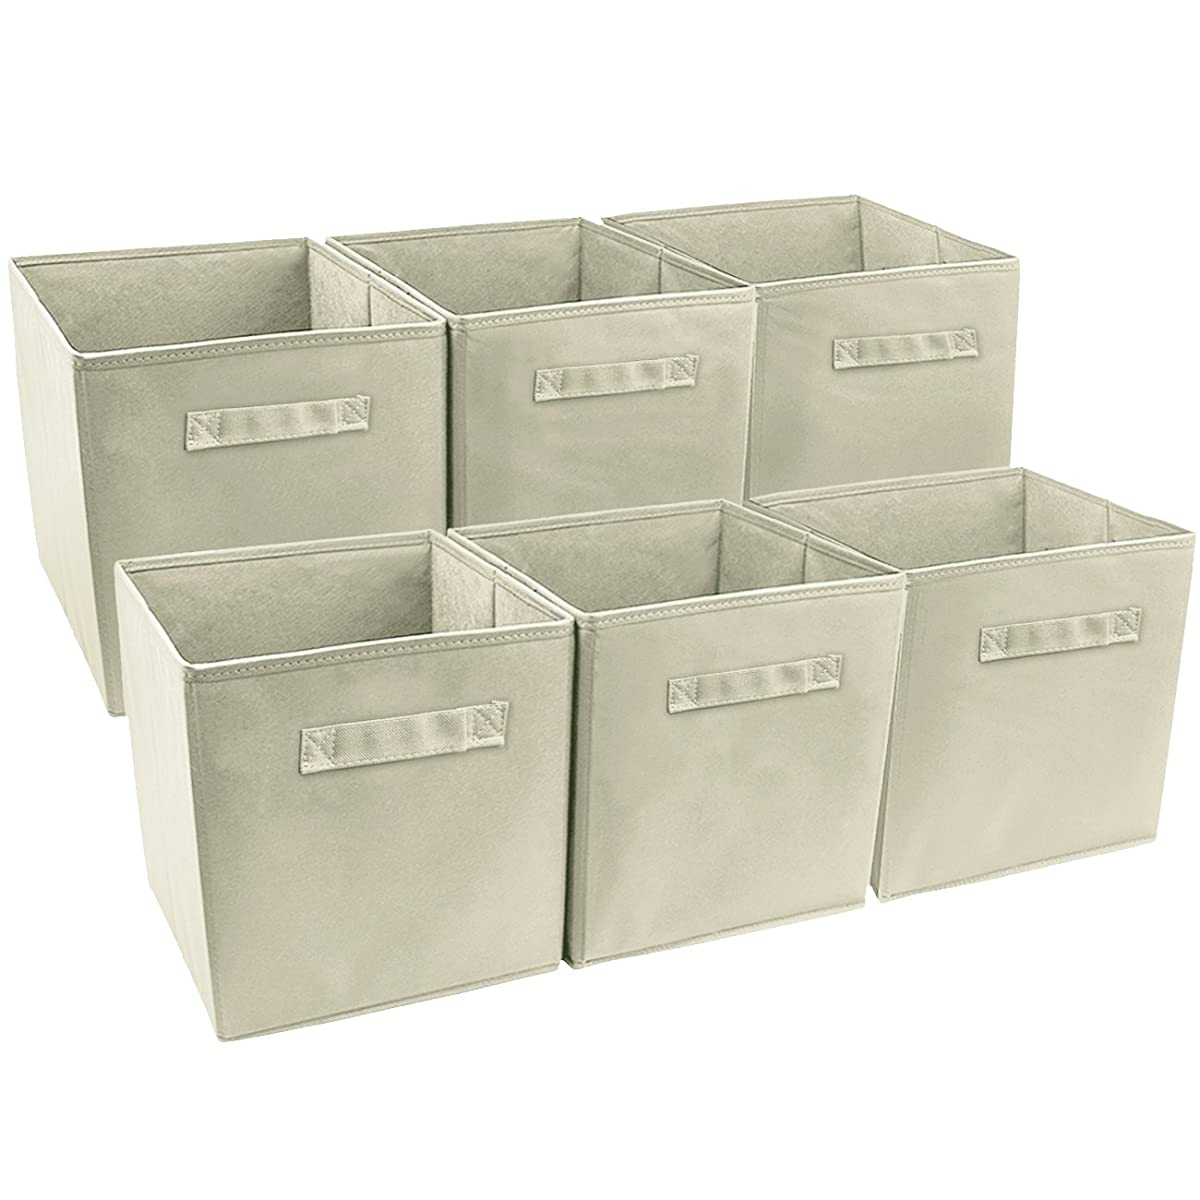 office storage baskets. Office Storage Baskets